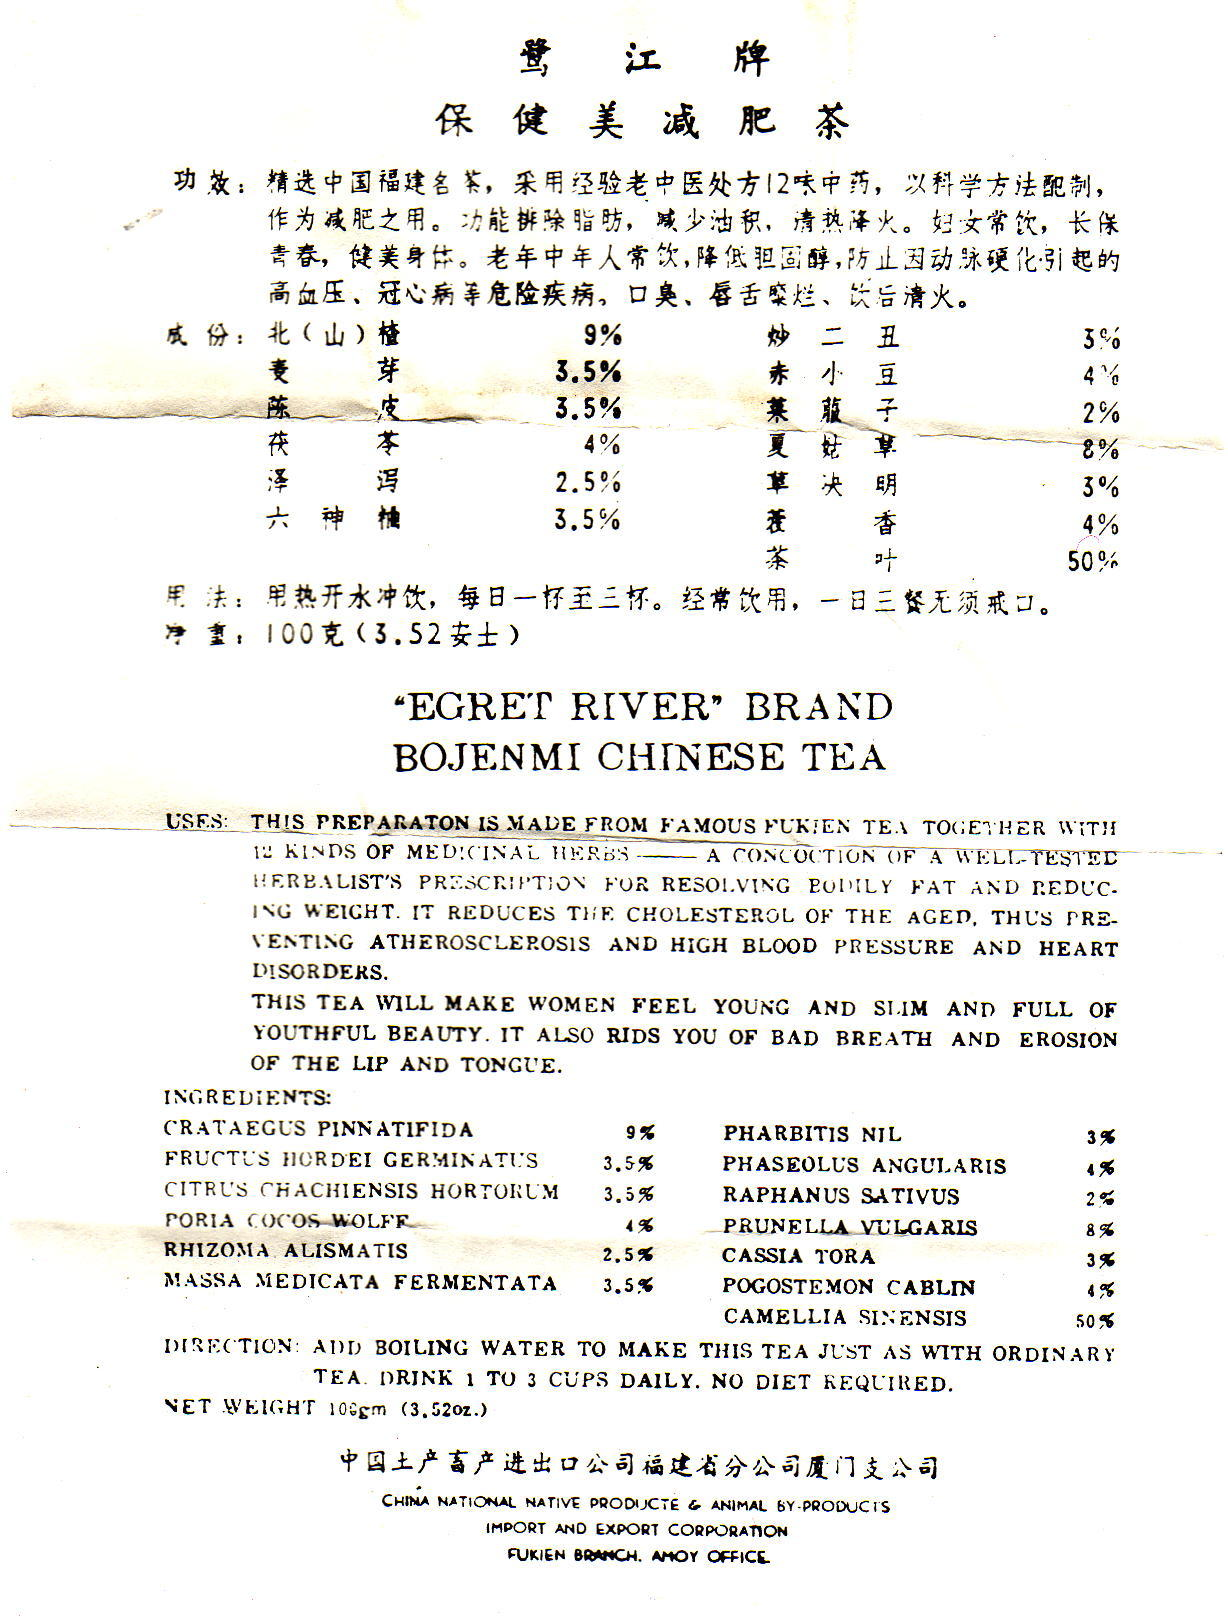 The Bojenmi tea packing slip